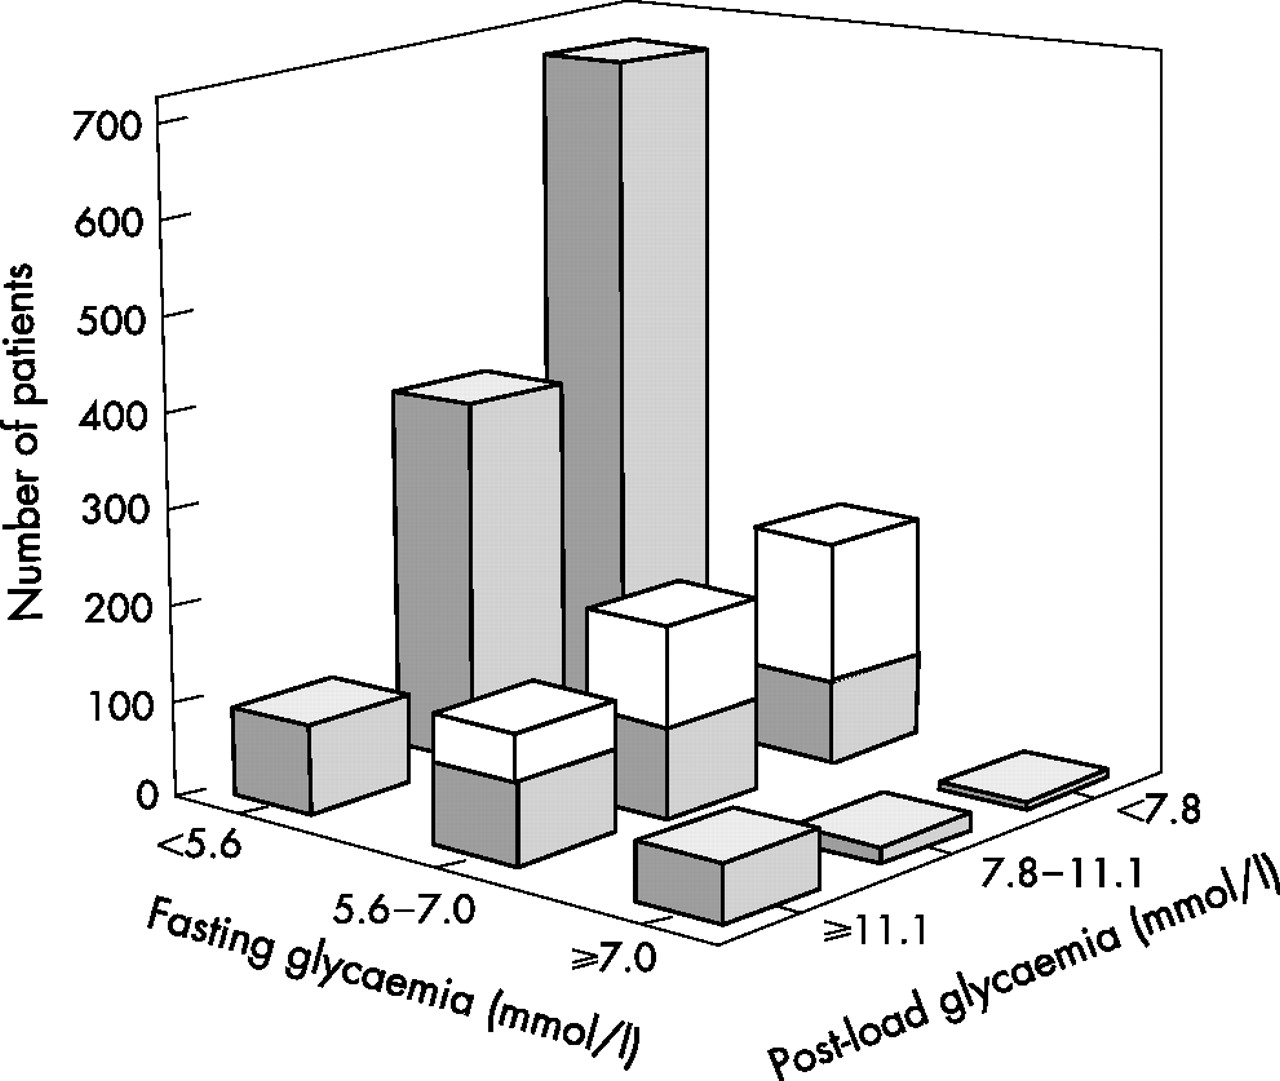 Oral Glucose Tolerance Test Is Needed For Appropriate Classification Of Glucose Regulation In